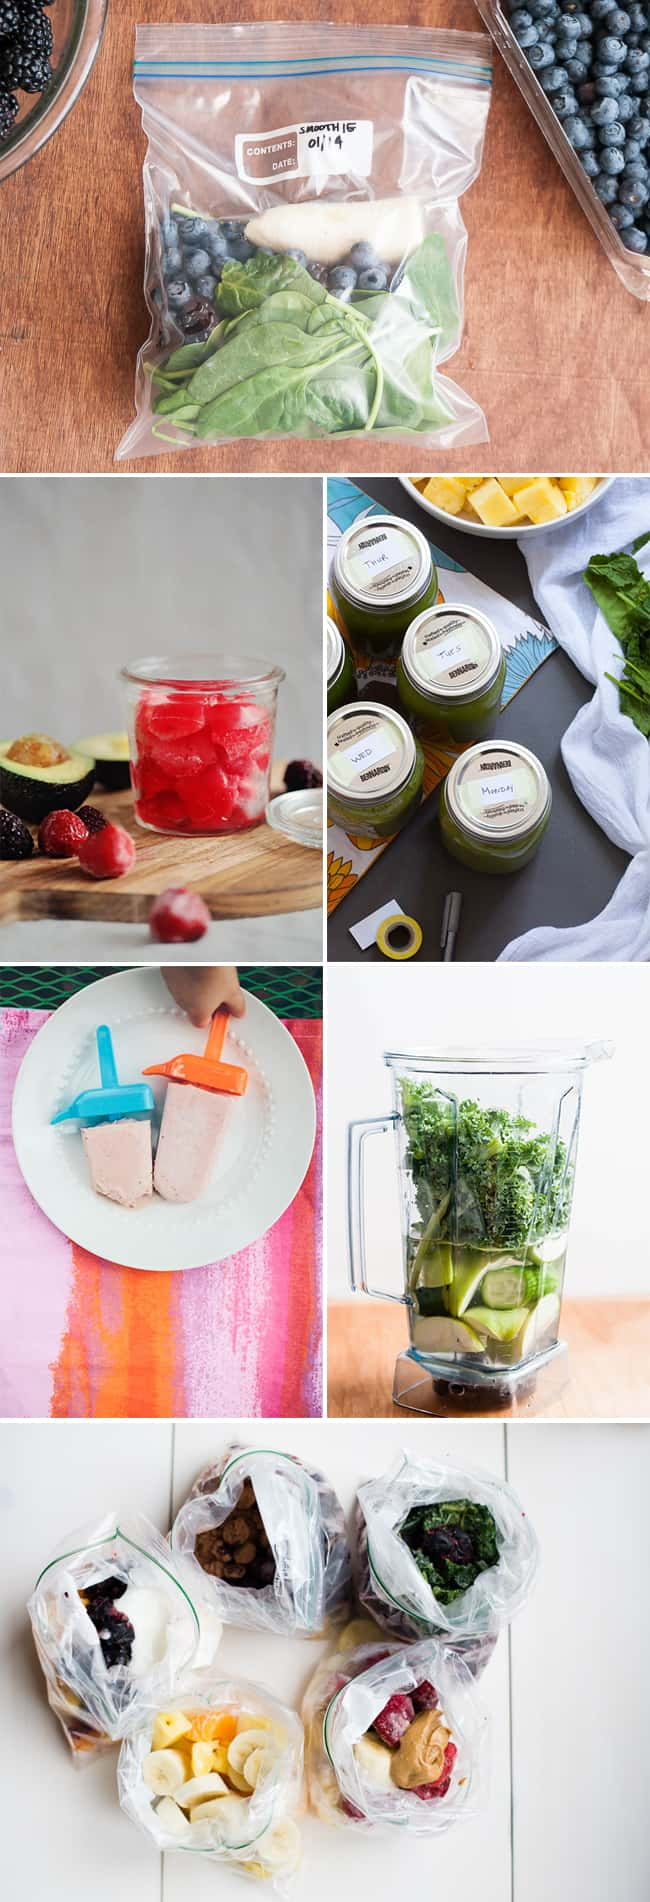 5 Ways to Make a Make Ahead Smoothie